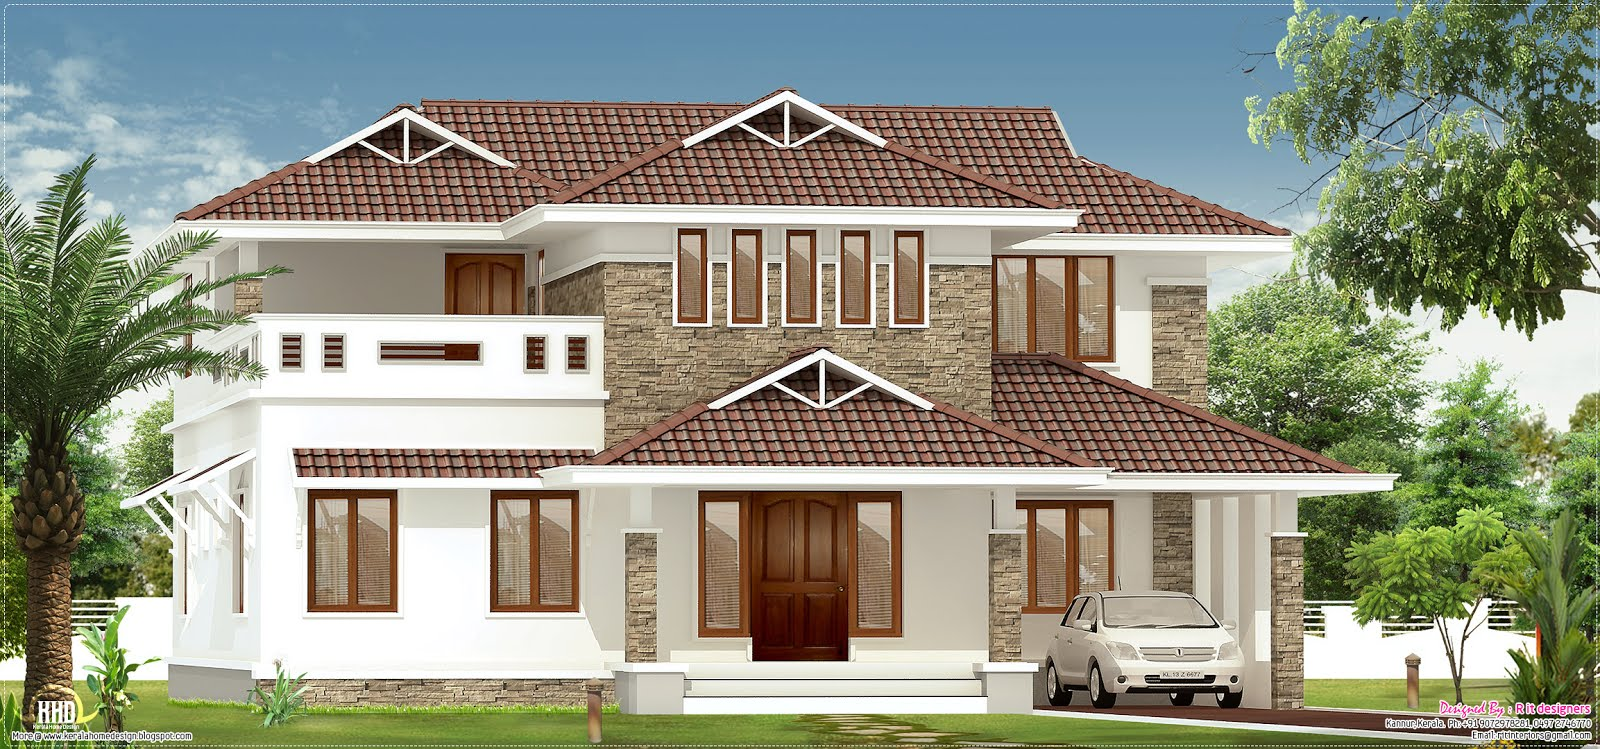 N Home Elevation Hours : Home villas front elevation n design images omahdesigns